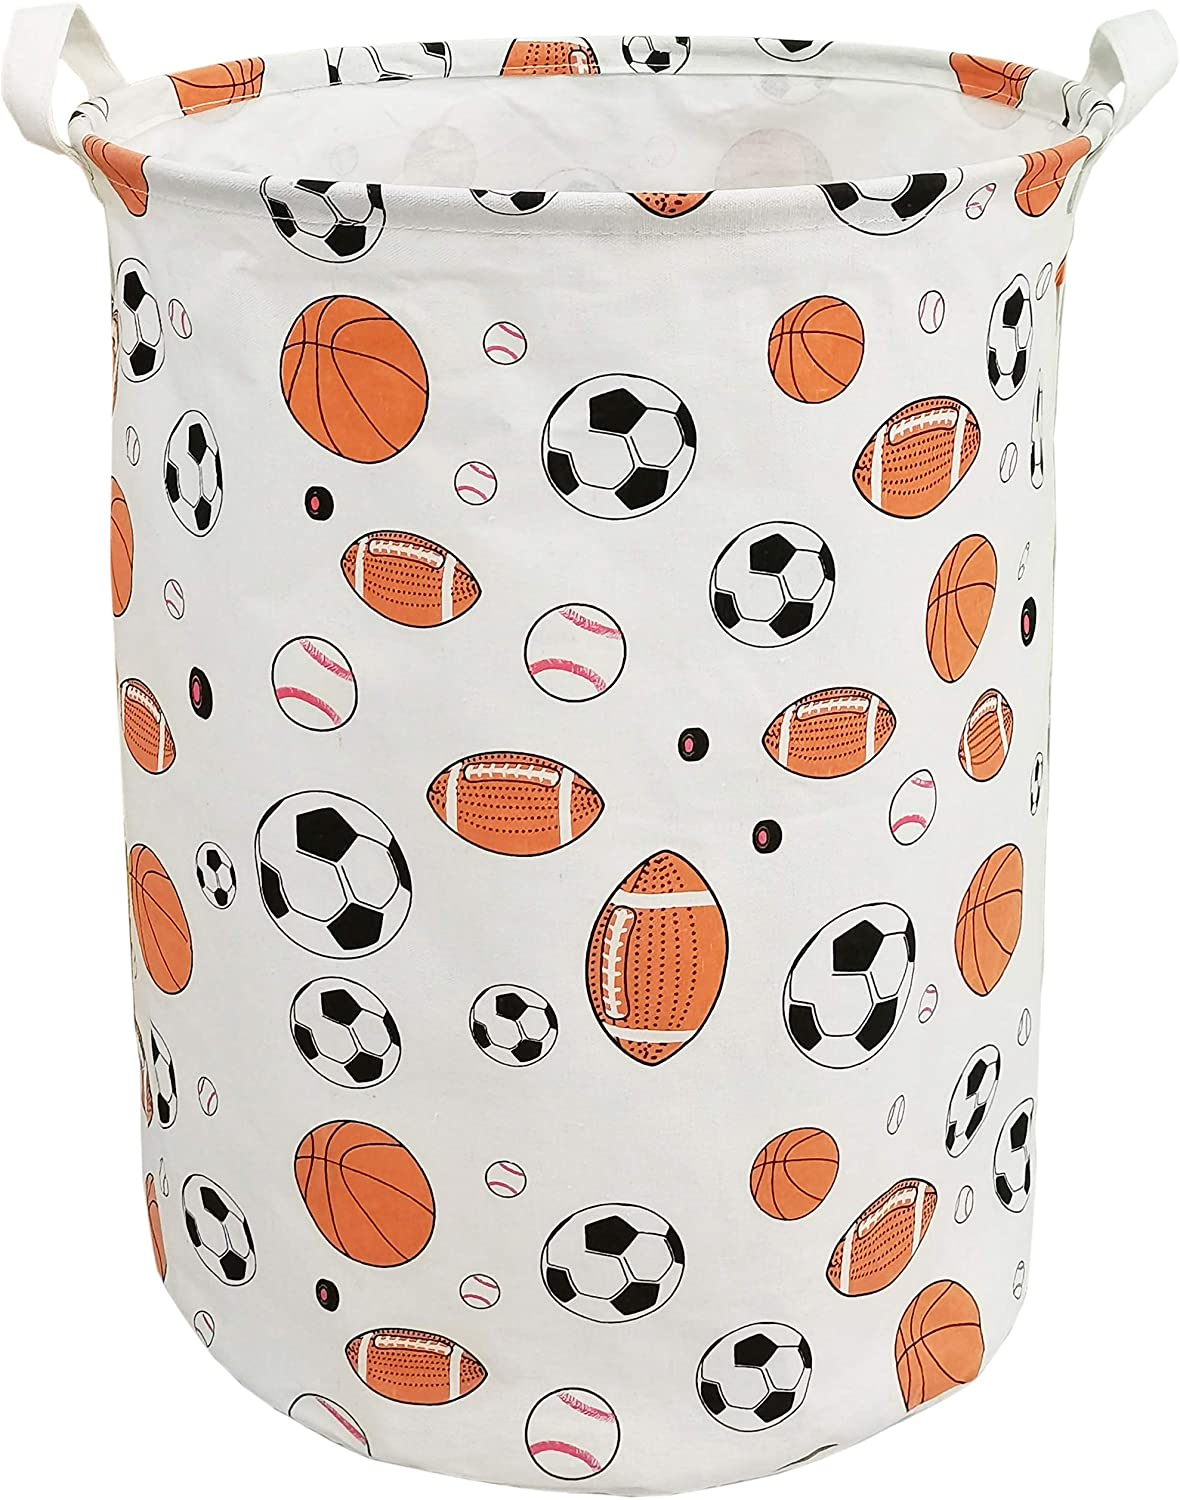 Storage Baskets Waterproof Foldable Organizer Large Storage Bins for Dirty Clothes Home and Office Toy Organizer Laundry Hamper(Foot Basketball)